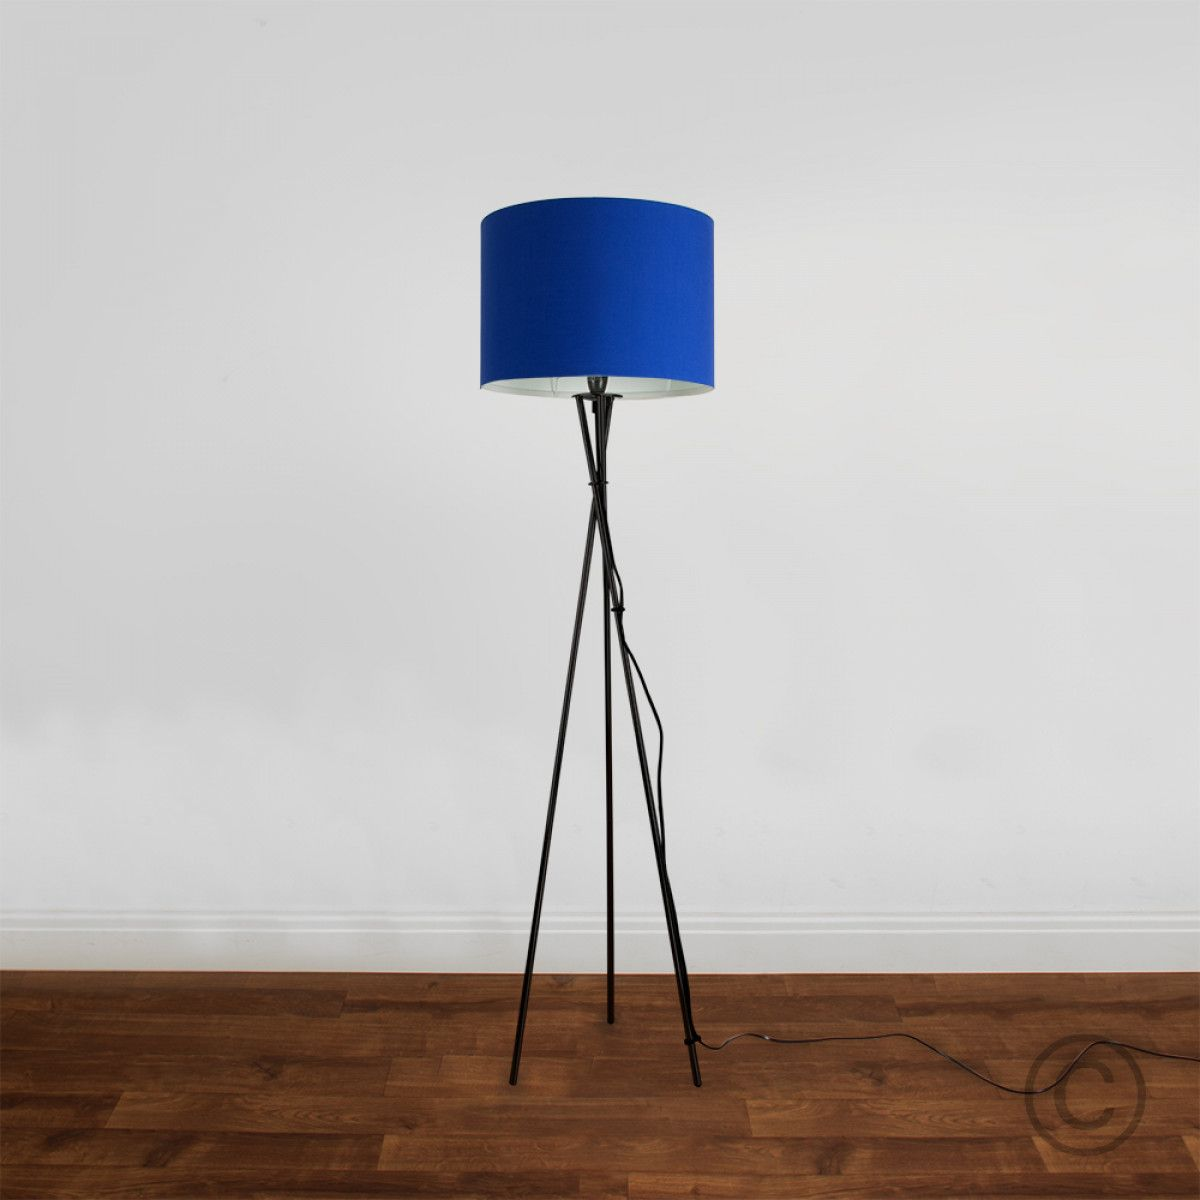 Blue floor lamp  Camden Tripod Floor Lamp in Black Blue Fabric Shade  Iconic Lights